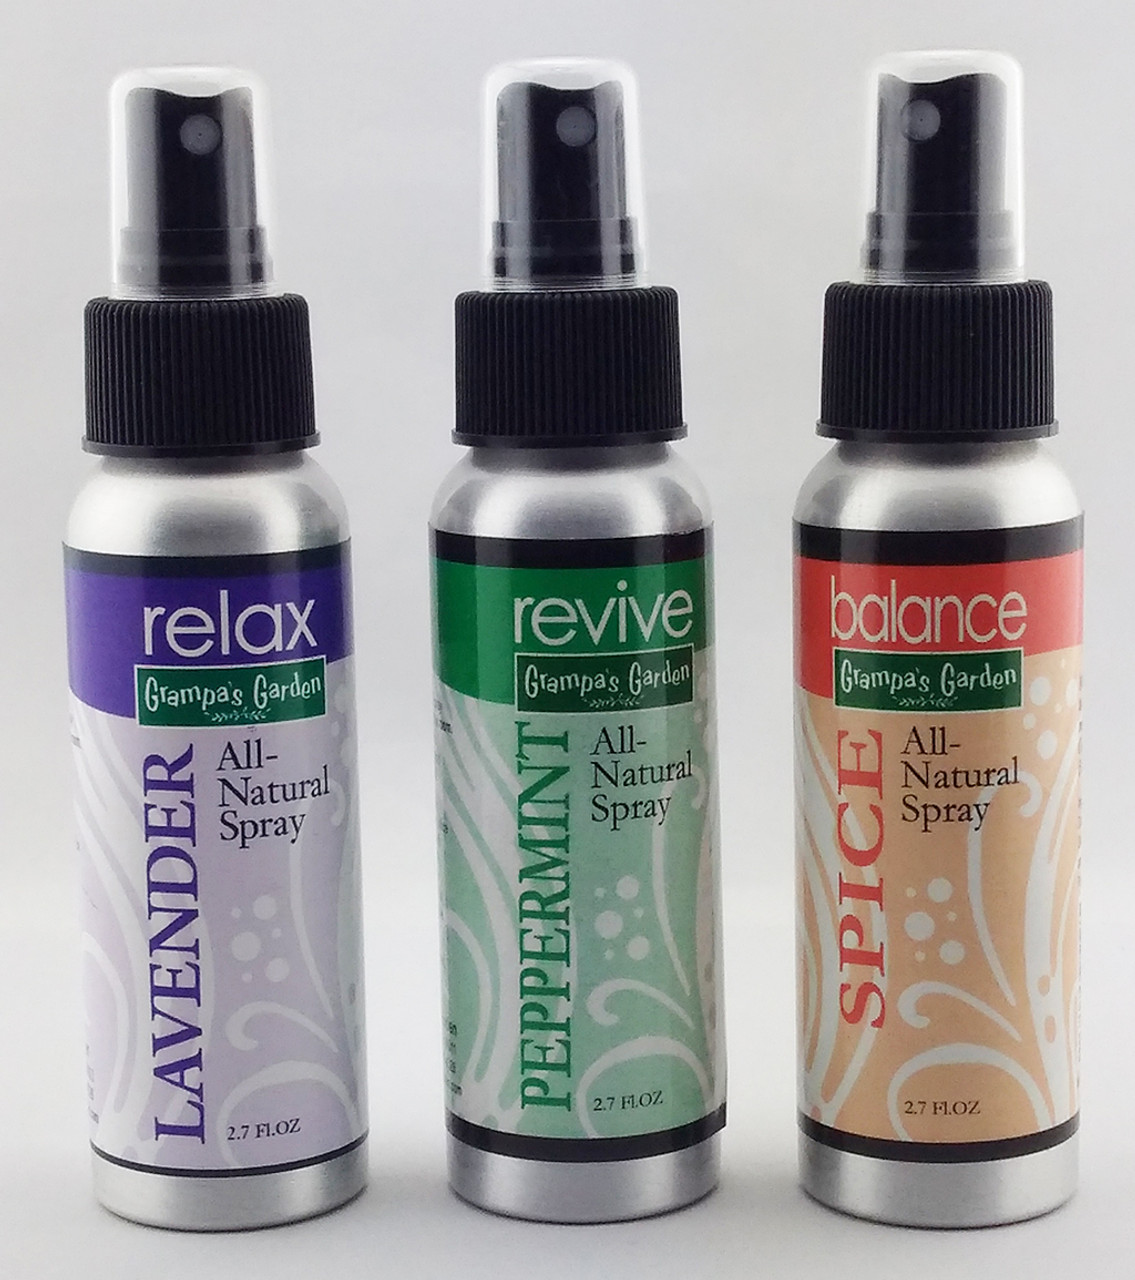 All Natural Spray Set